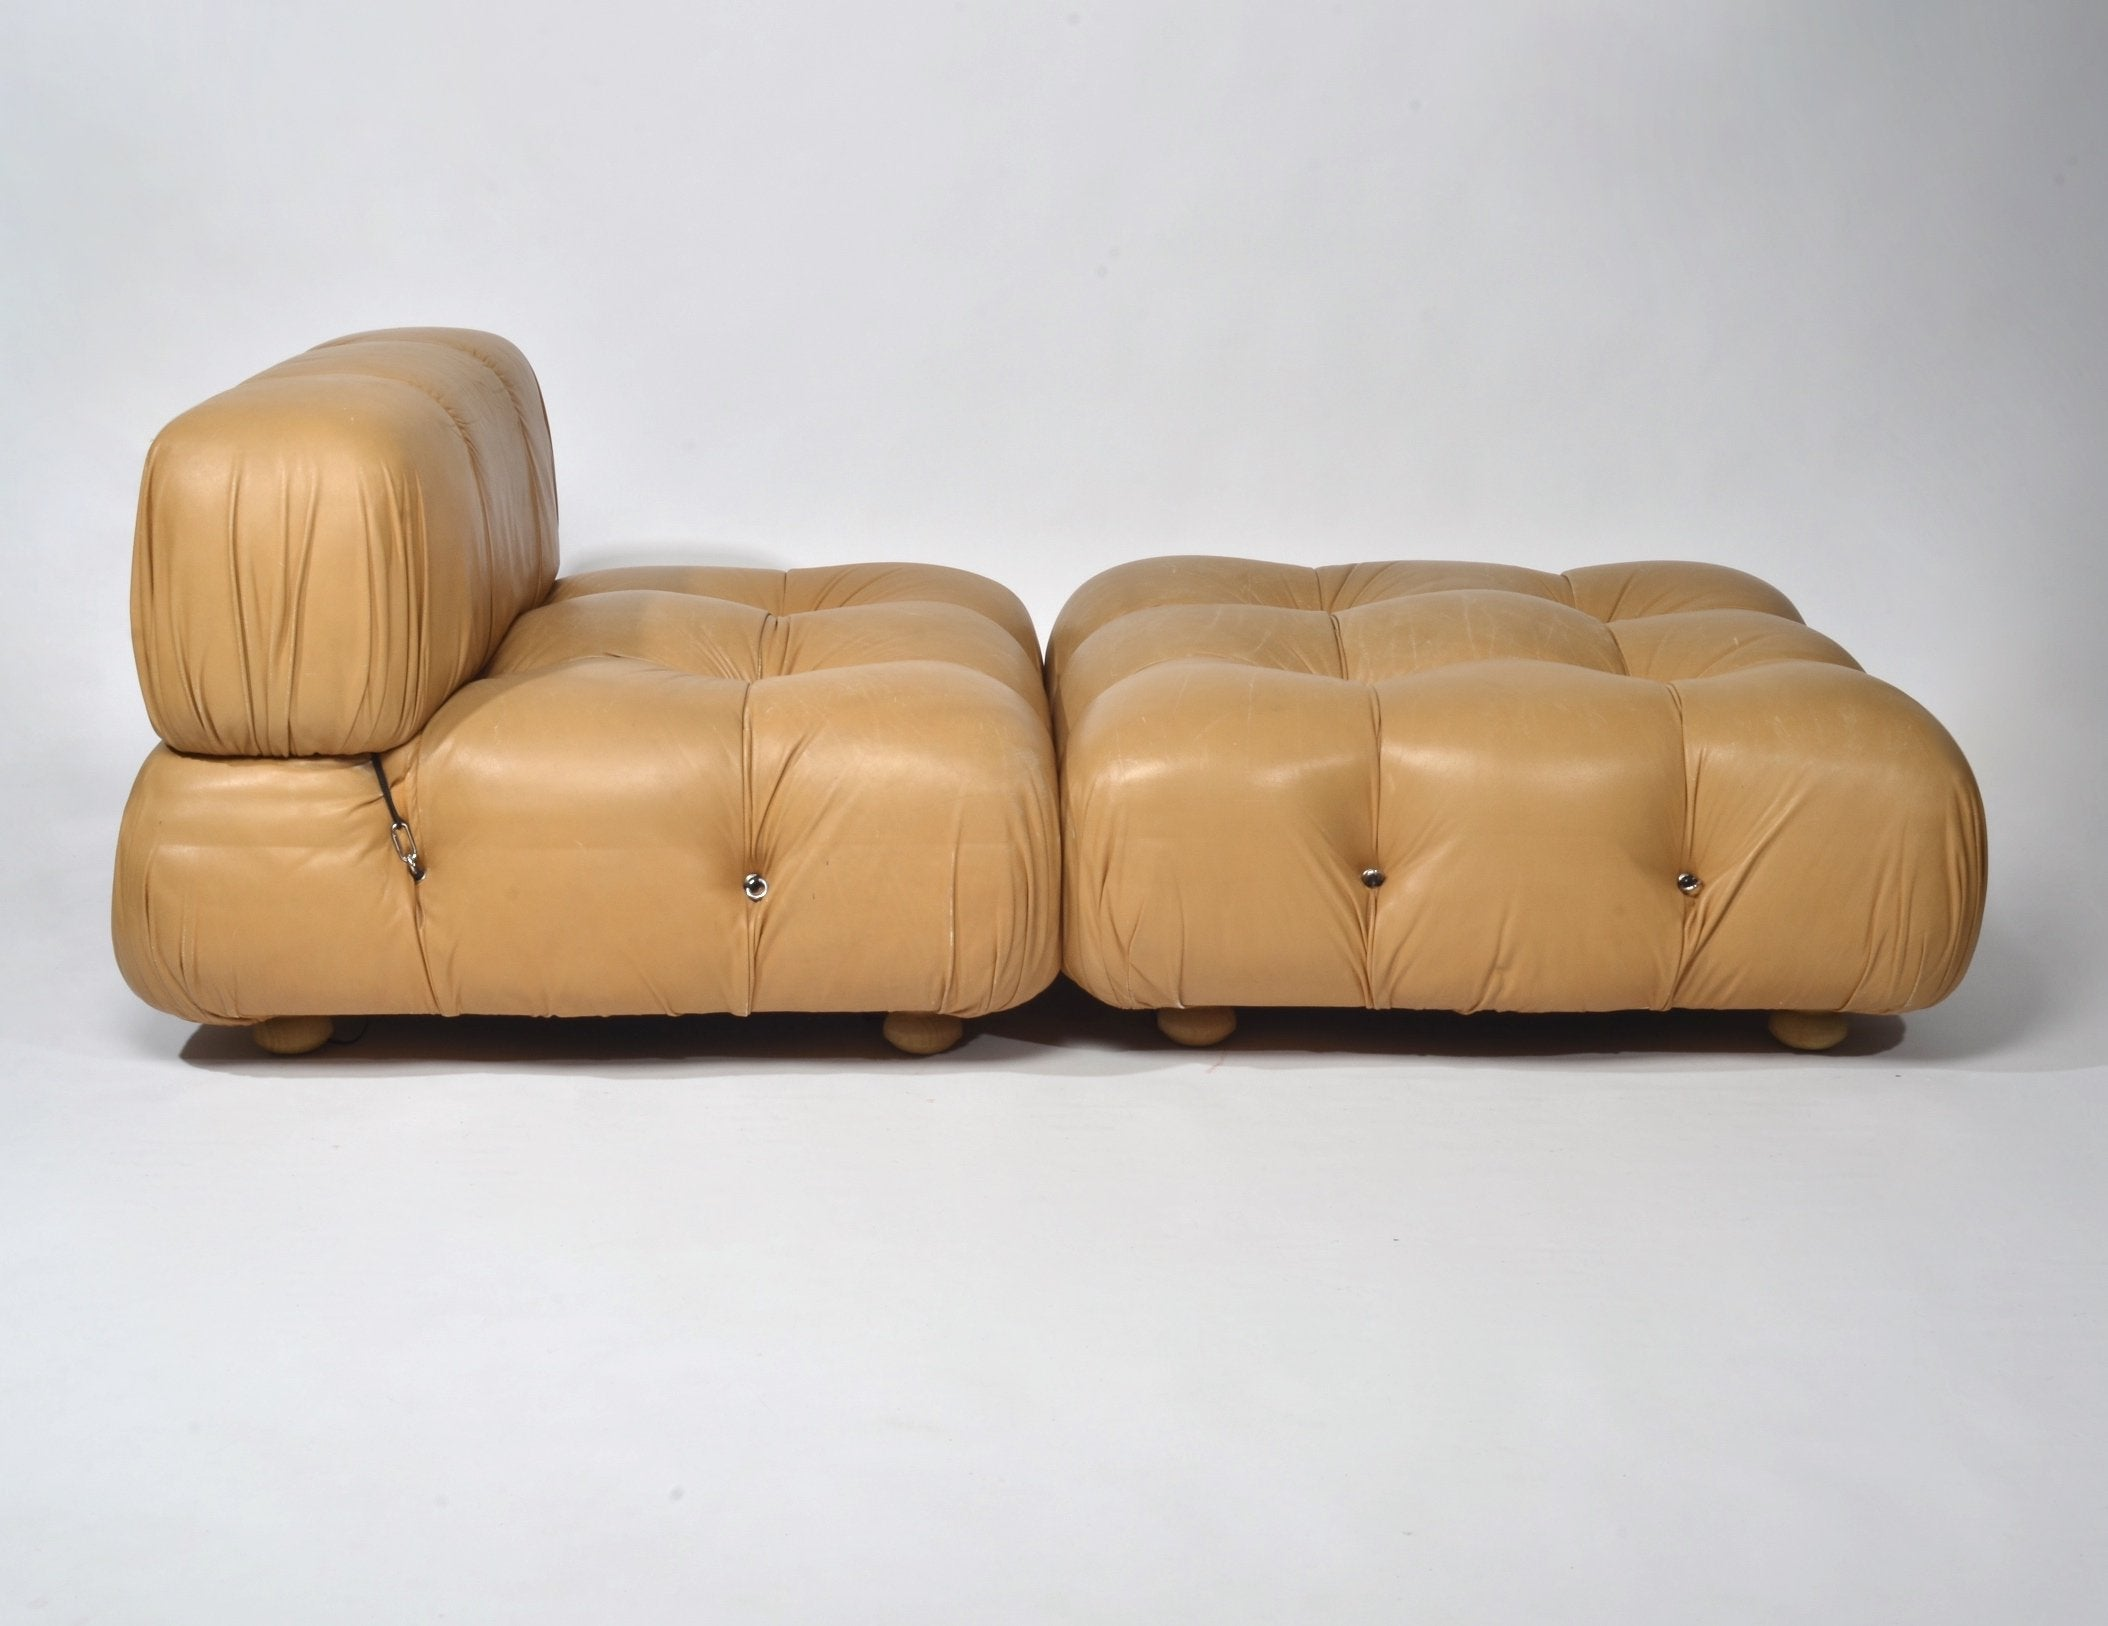 Mario Bellini 'Camaleonda' Lounge Chair and Ottoman, 1973